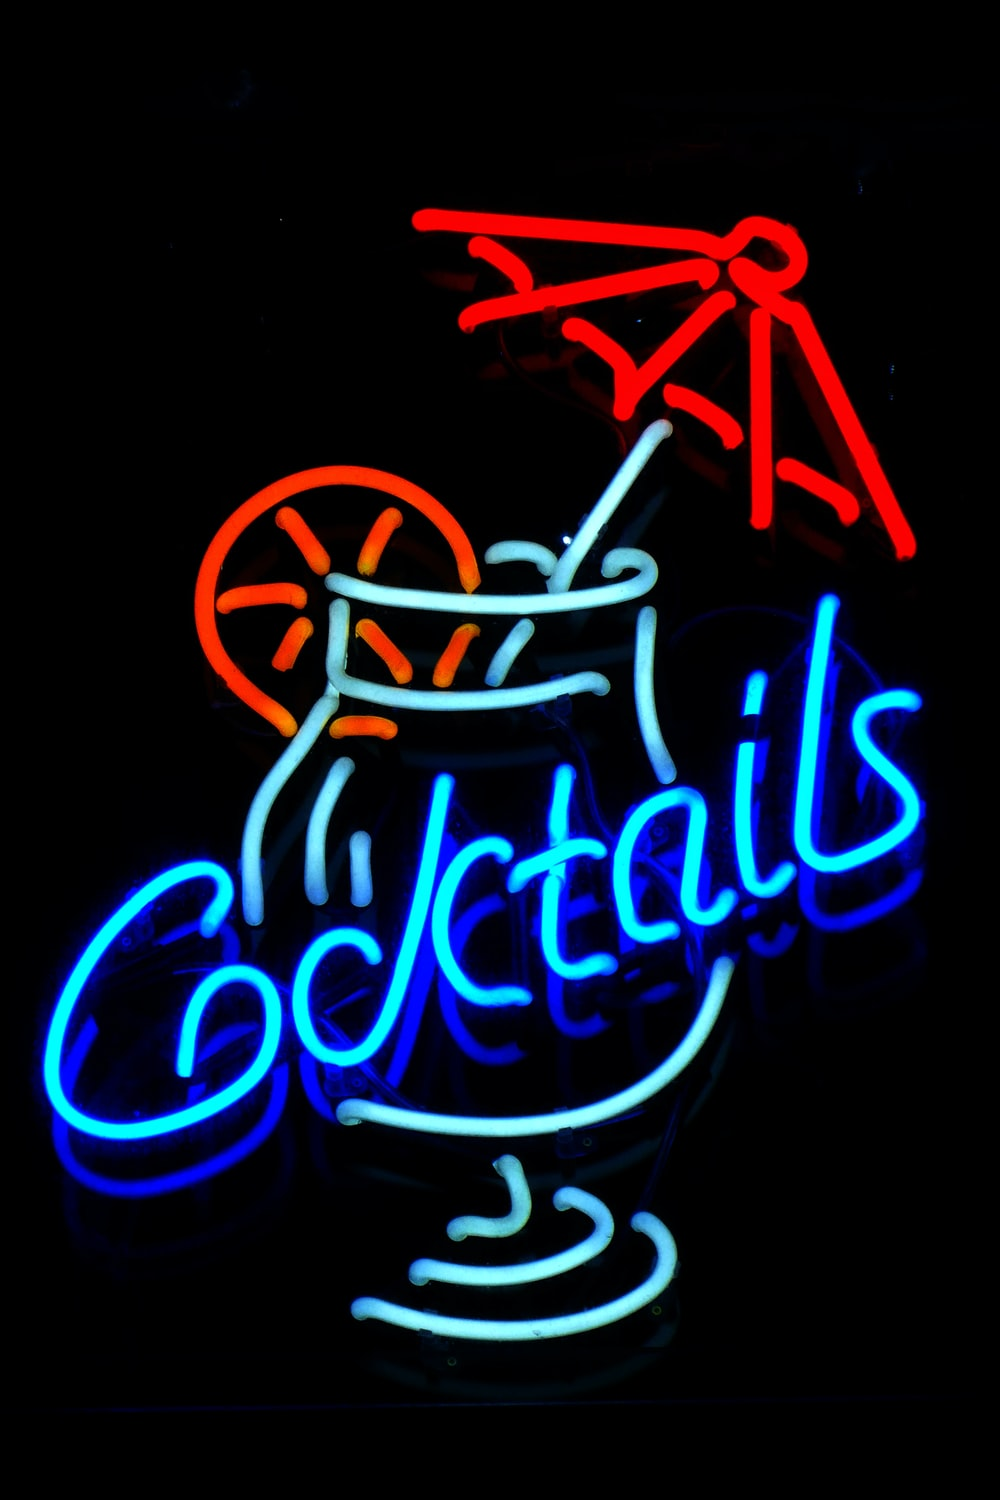 blue and red cocktails neon signage